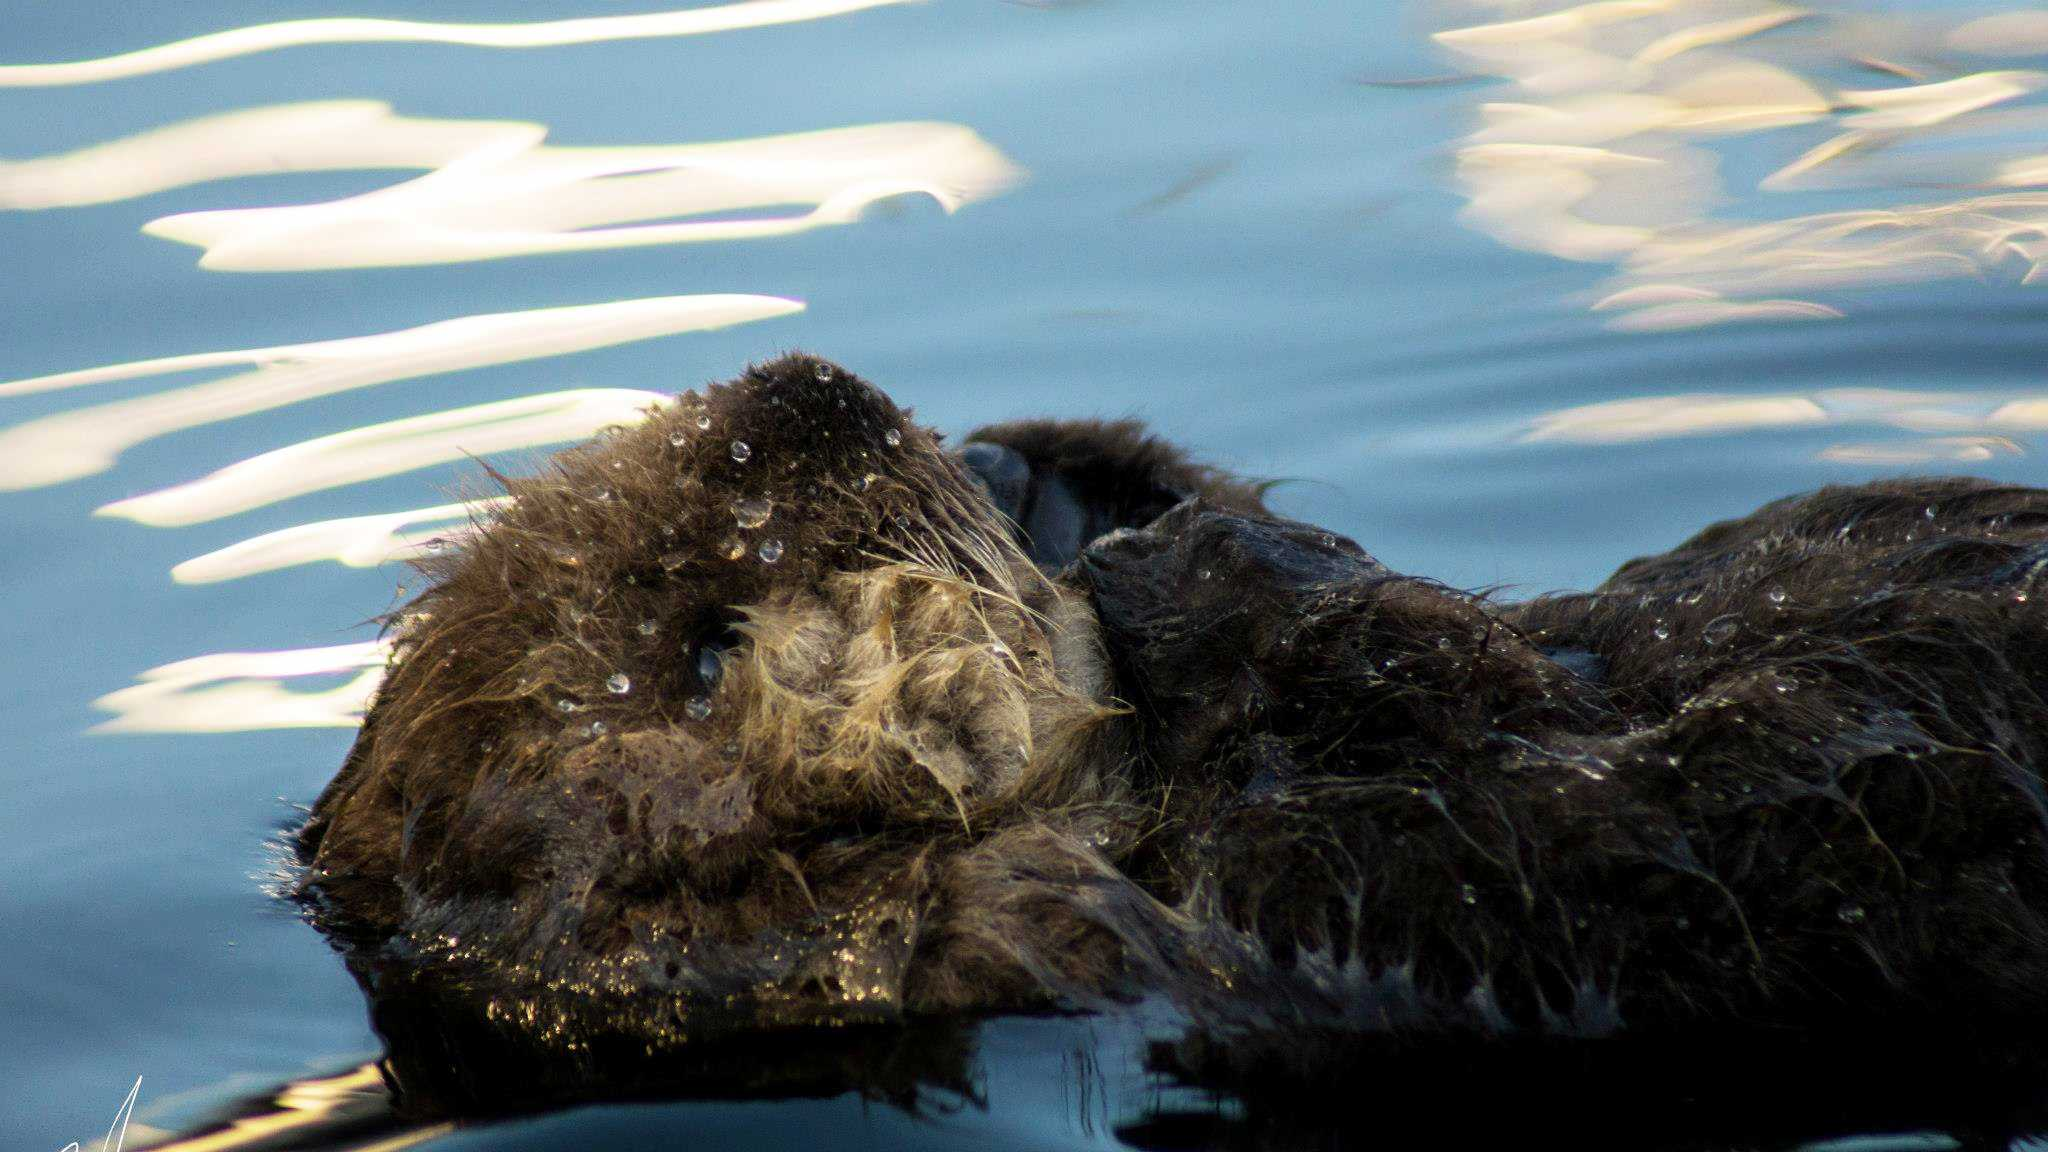 The sea otter pup floats like a cork because it has much fluffy fur. Baby sea otters cannot dive so they rely on their hard-working and devout mothers for food.